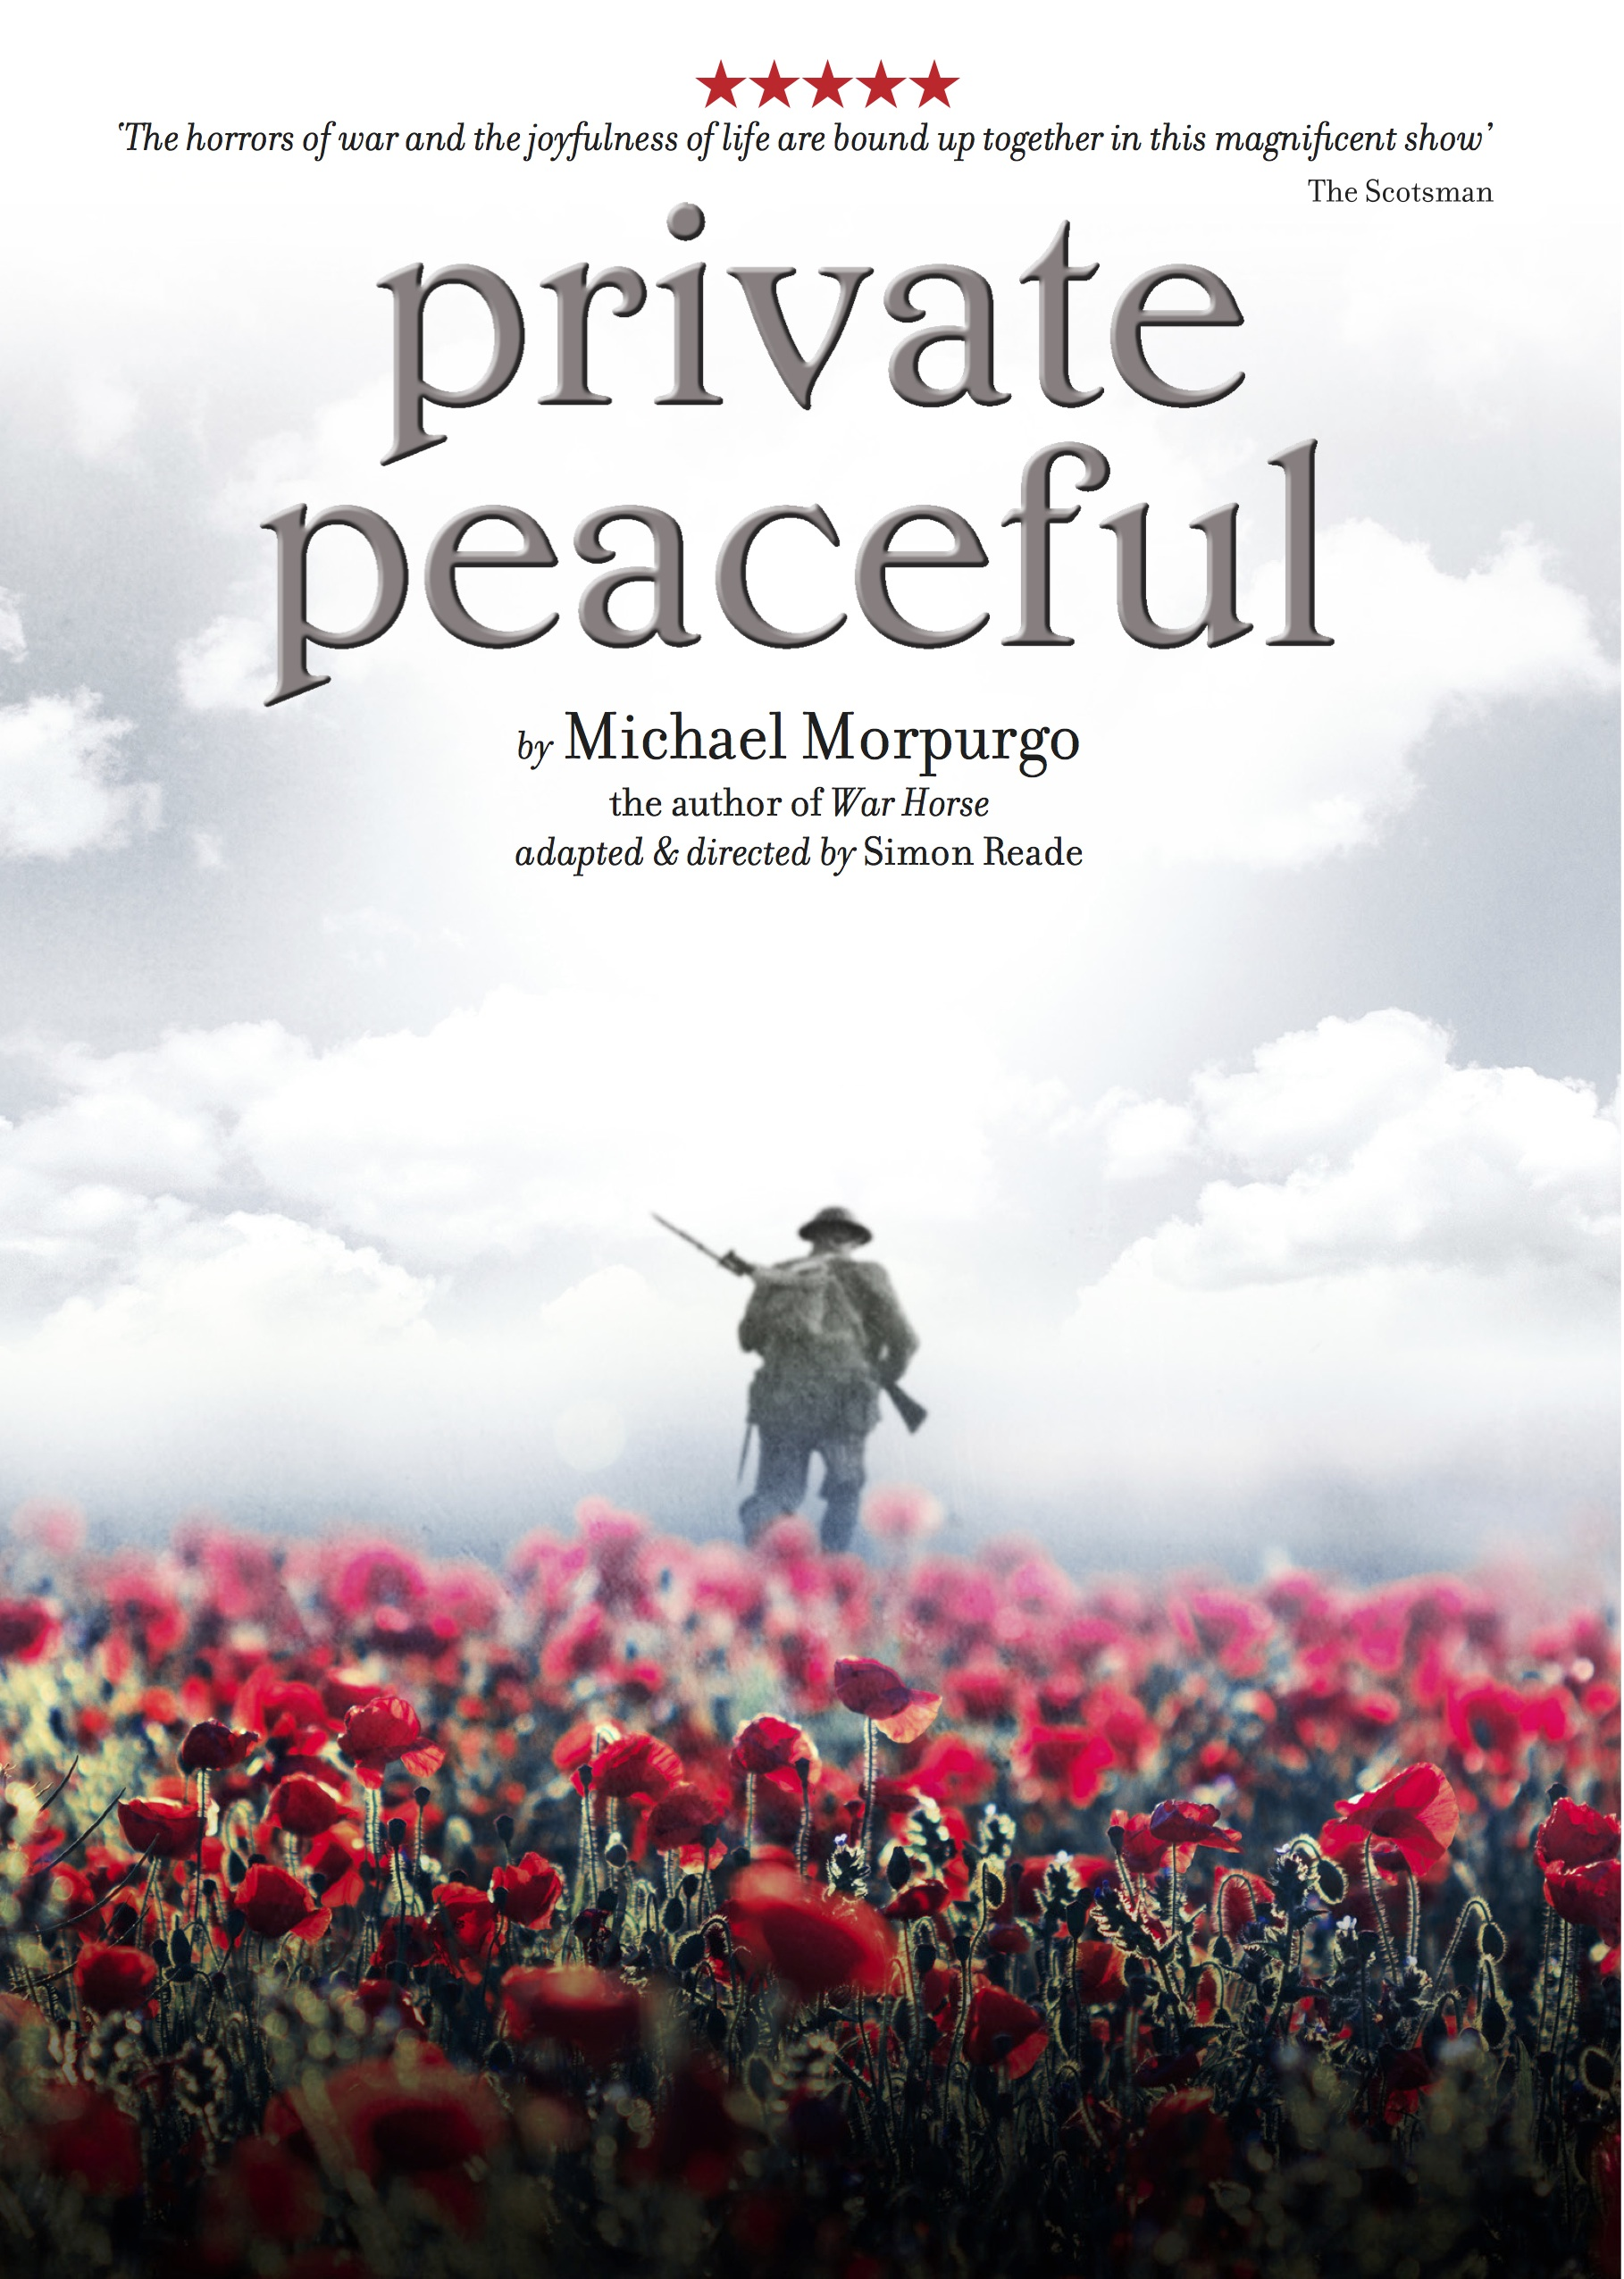 PrivatePeaceful_Generic-Venue copy.jpg